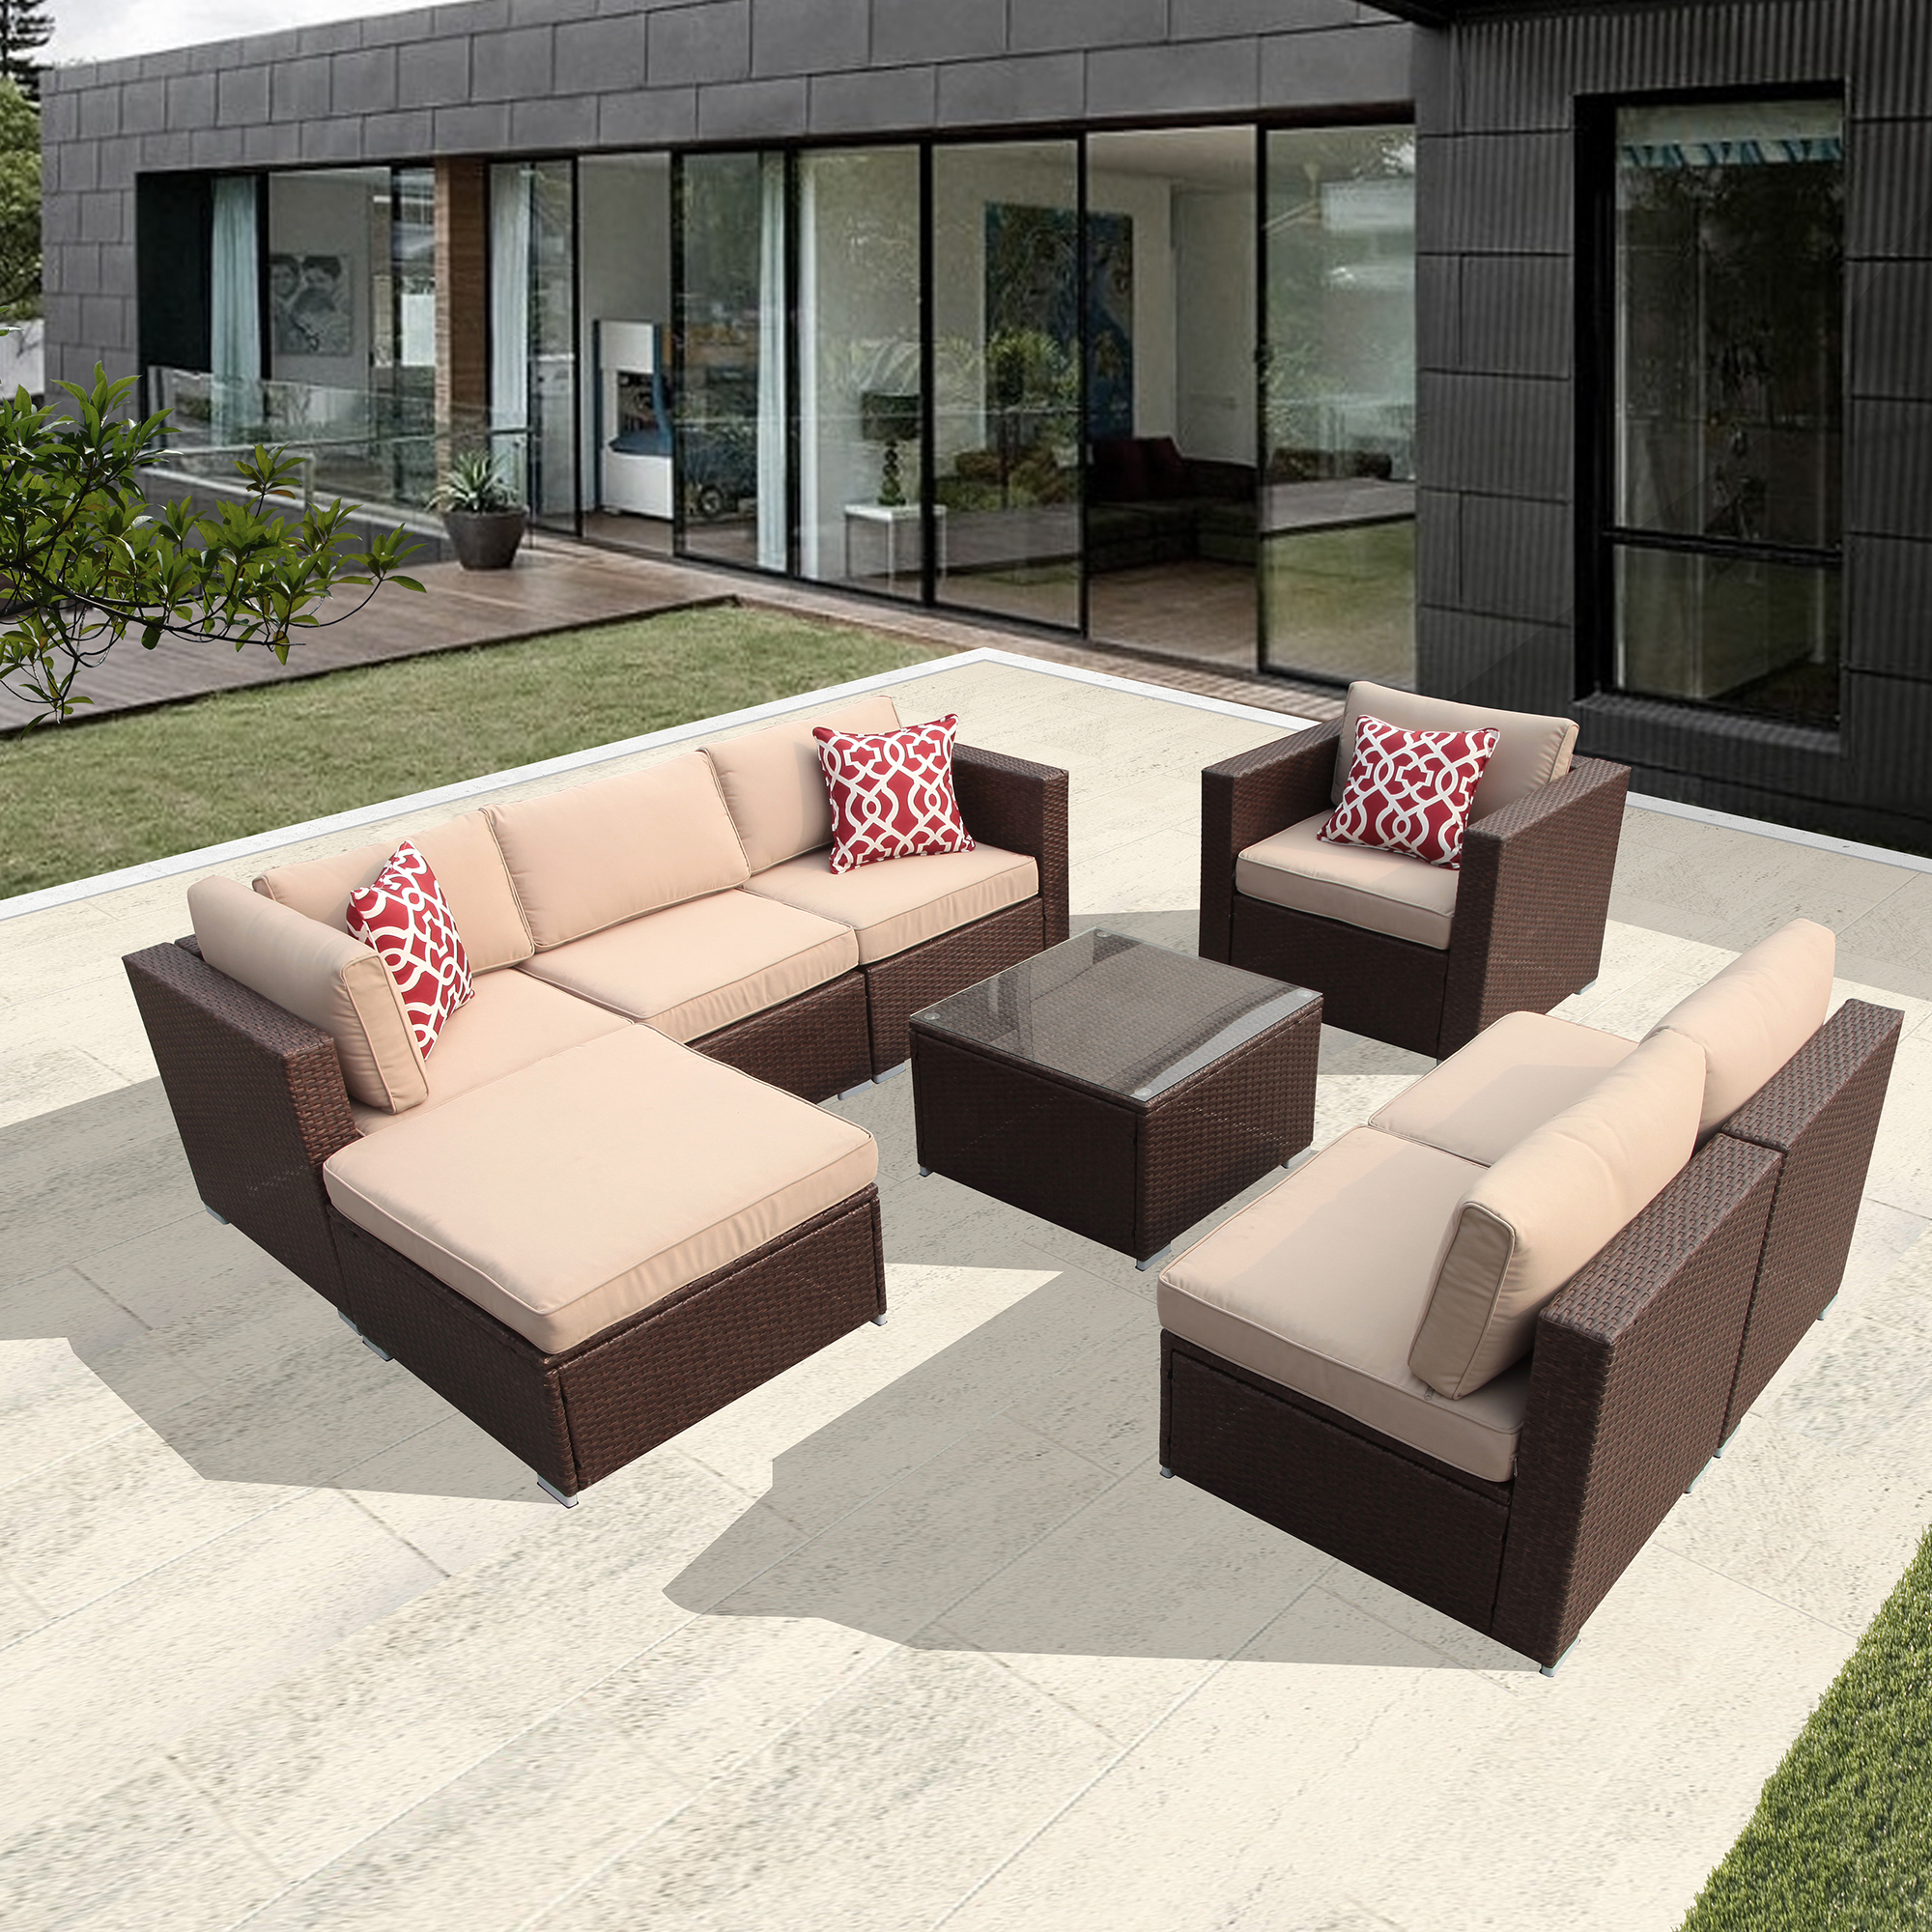 8pc Outdoor Rattan Sectional Furniture Set with Beige Seat and Back Cushions, Red Throw Pillows, Aluminum Frame,... by